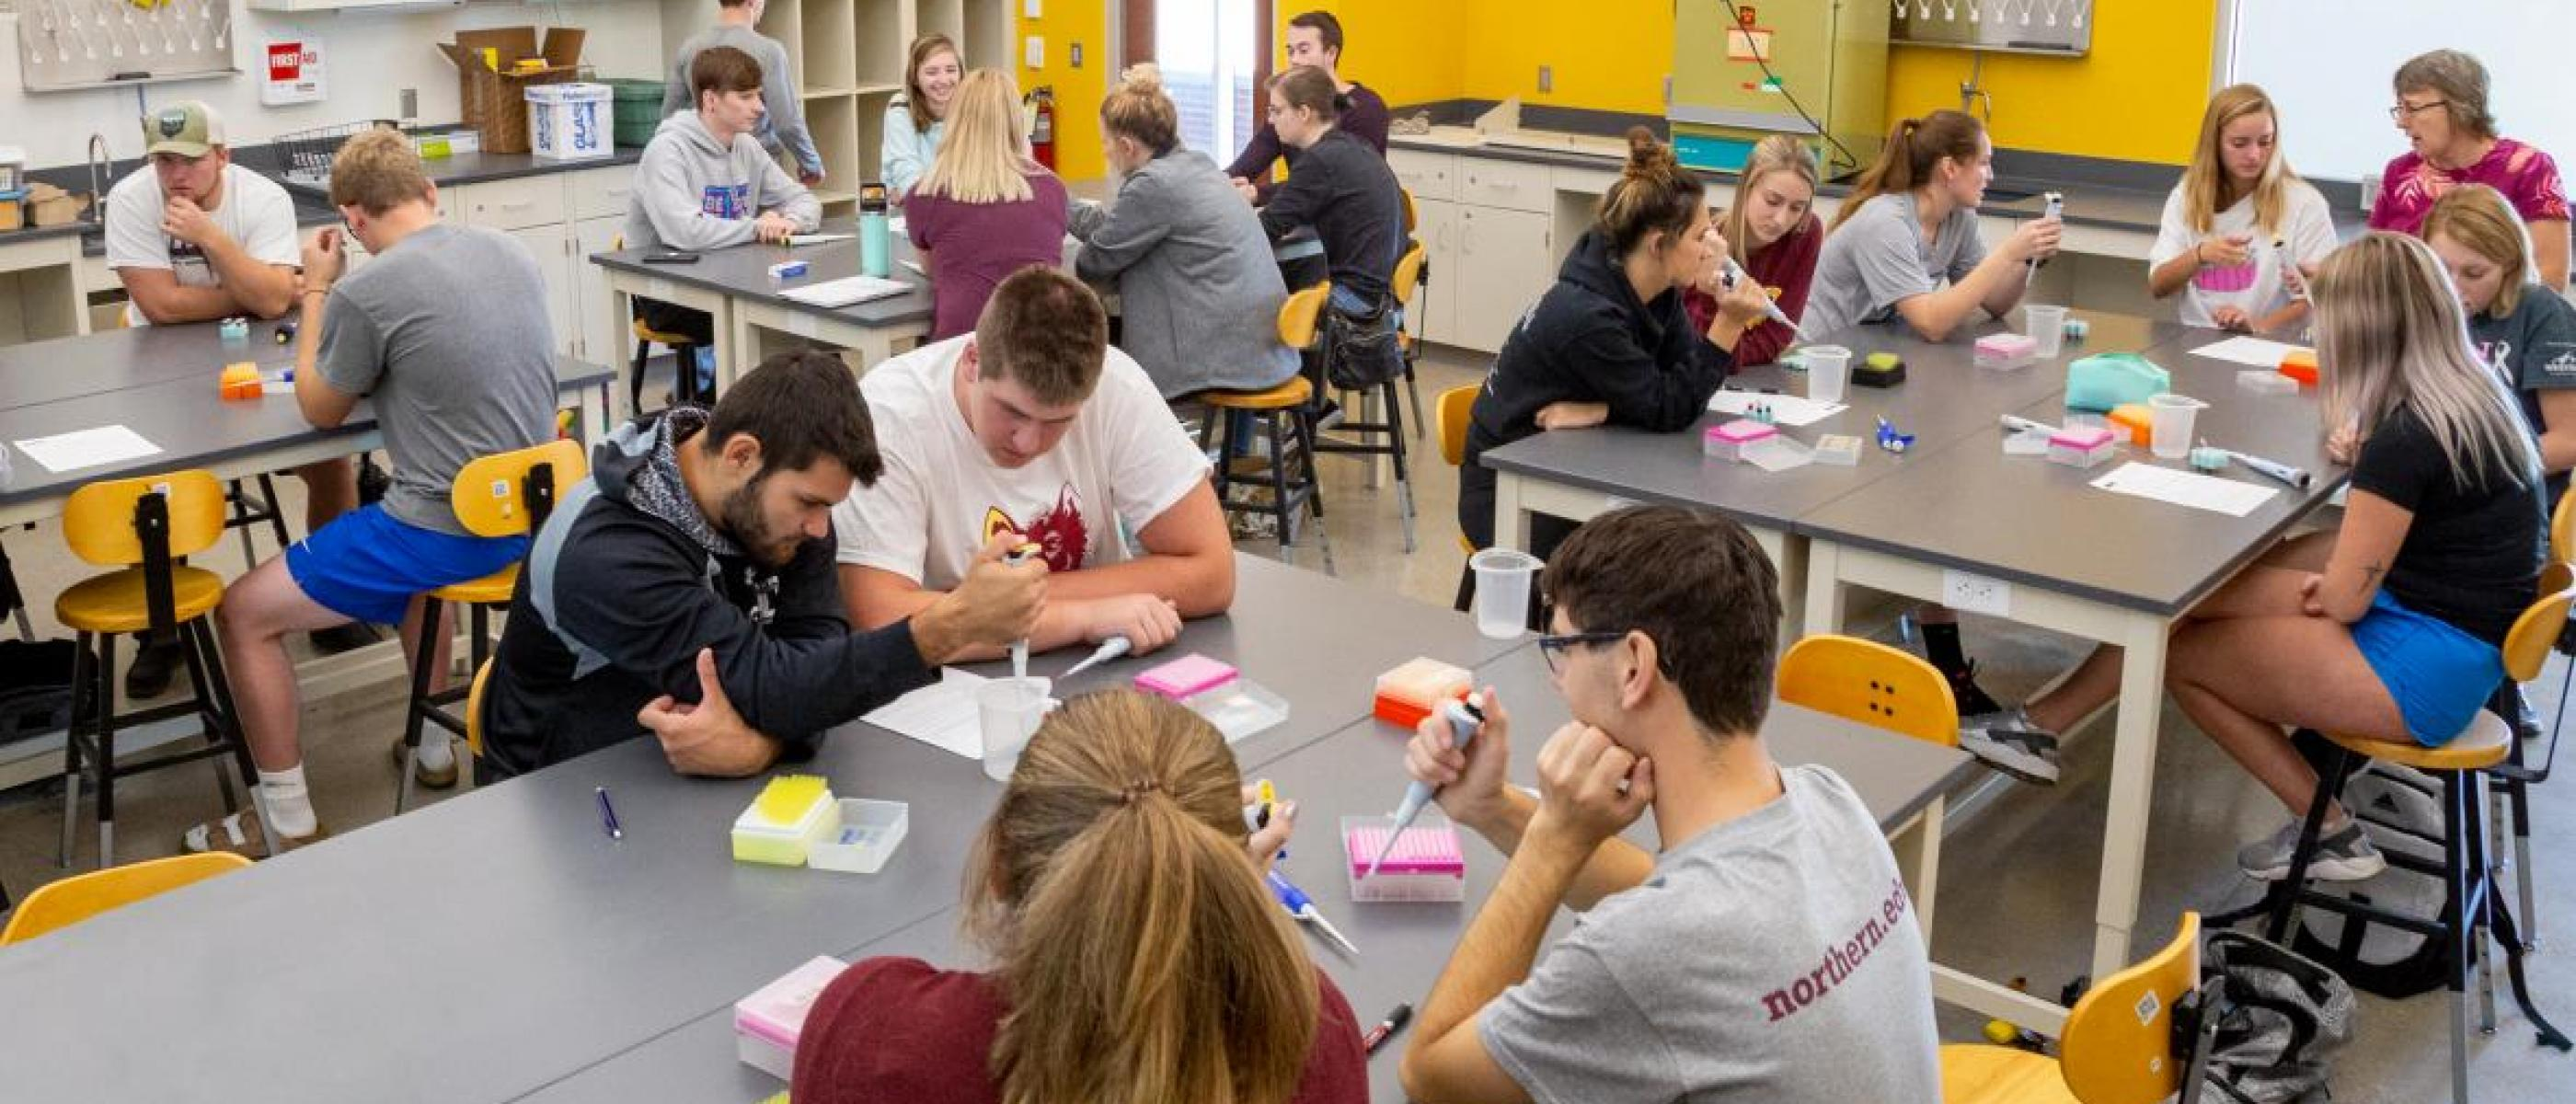 Students work in a Northern science lab